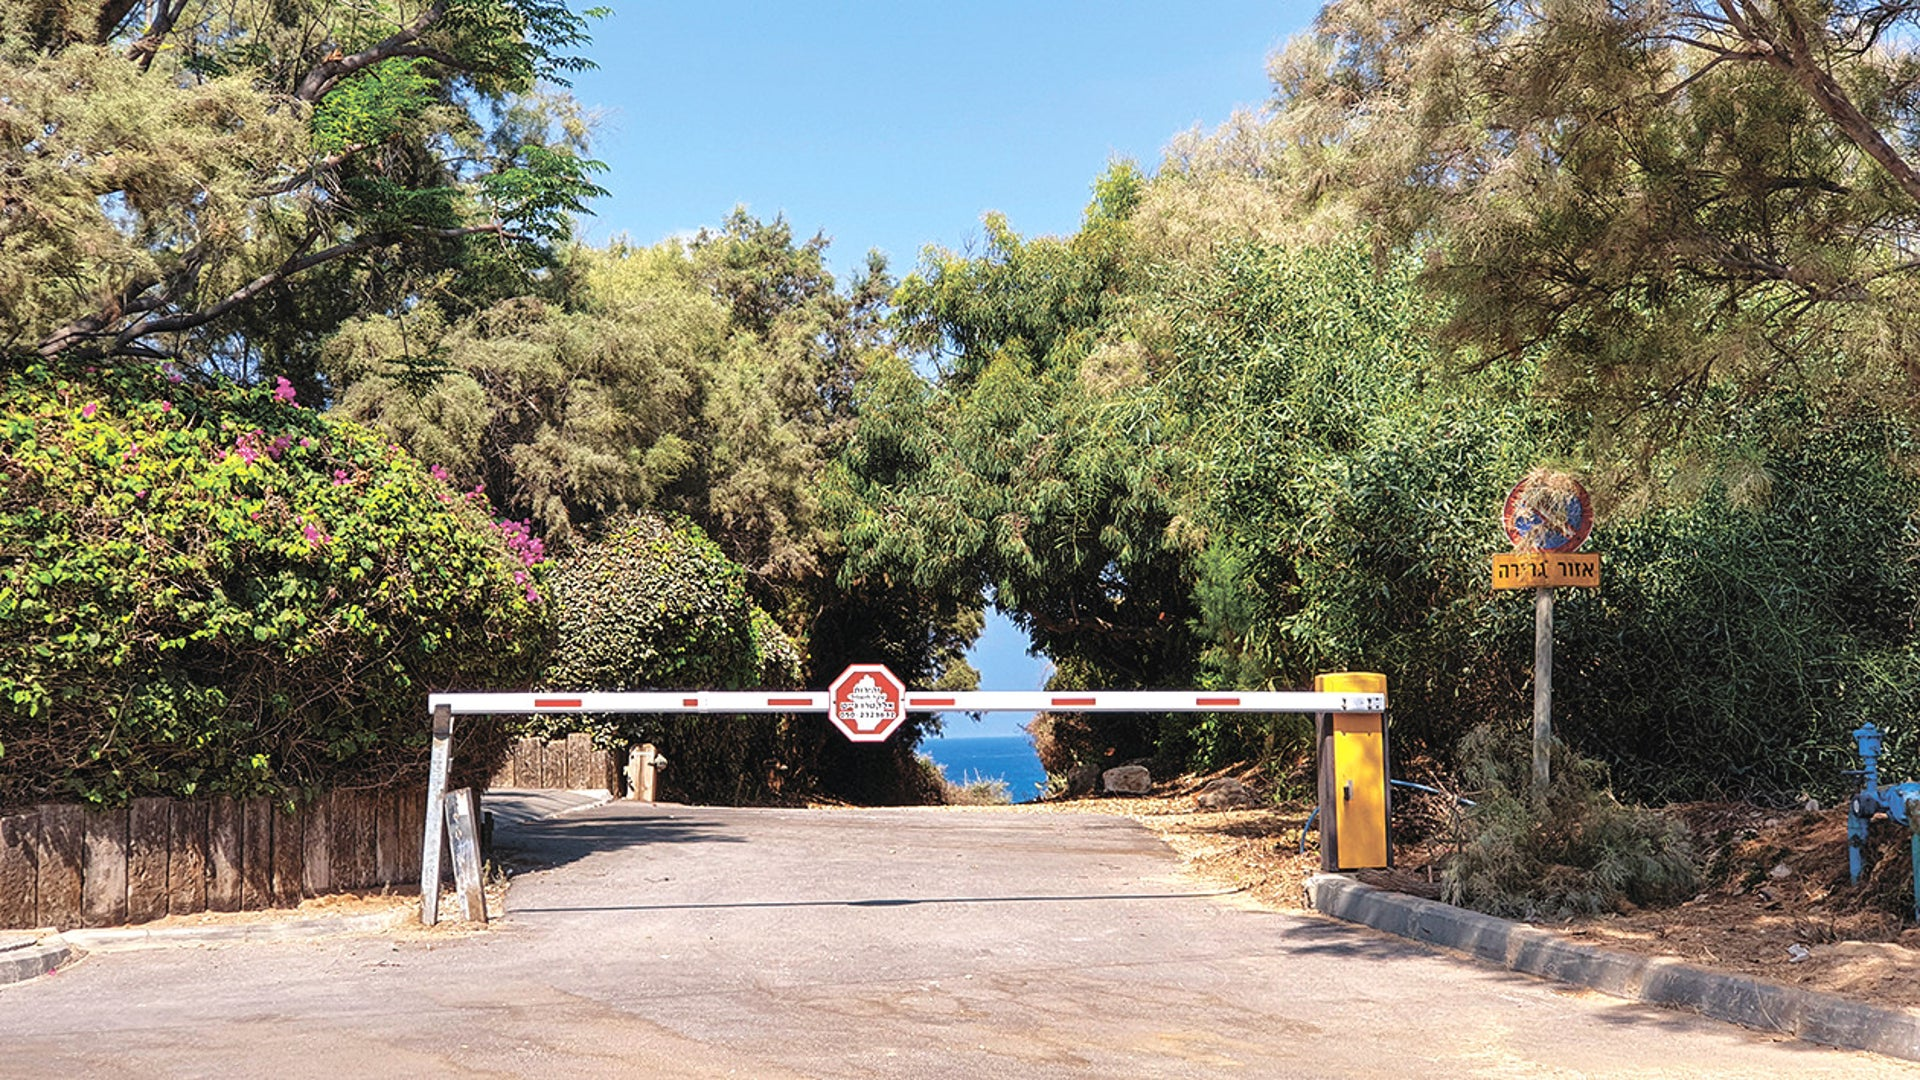 A gate bars the entrance to a public seaside road in the Hof Hasharon area, central Israel, September 14, 2020.